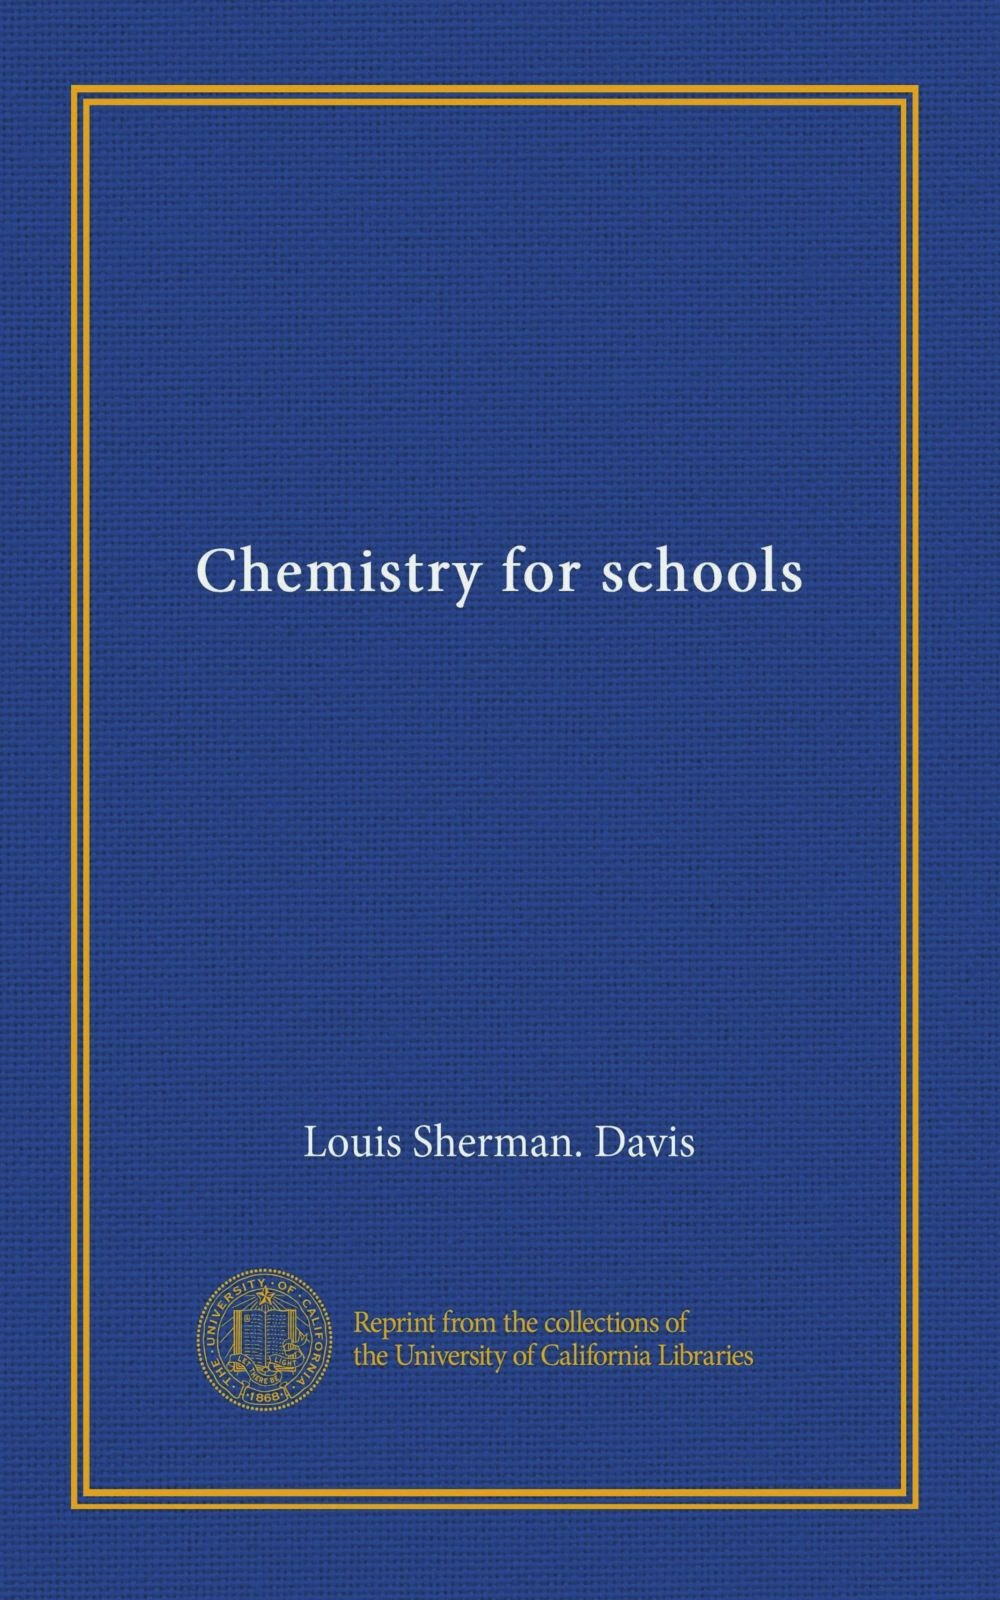 Download Chemistry for schools PDF